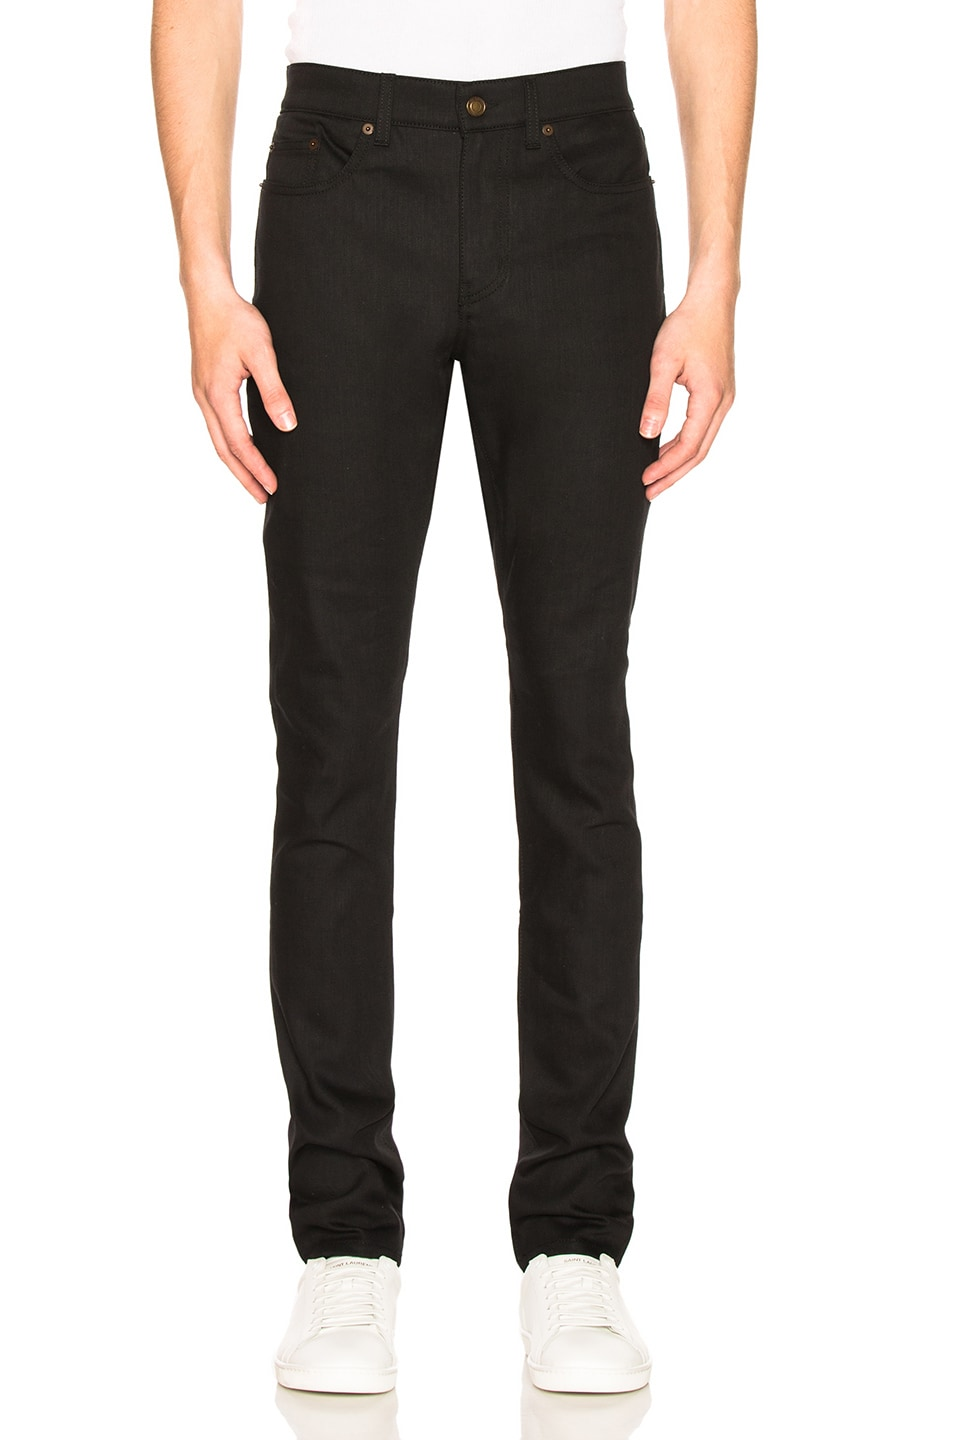 Image 1 of Saint Laurent 5 Pocket Skinny Jeans in Black